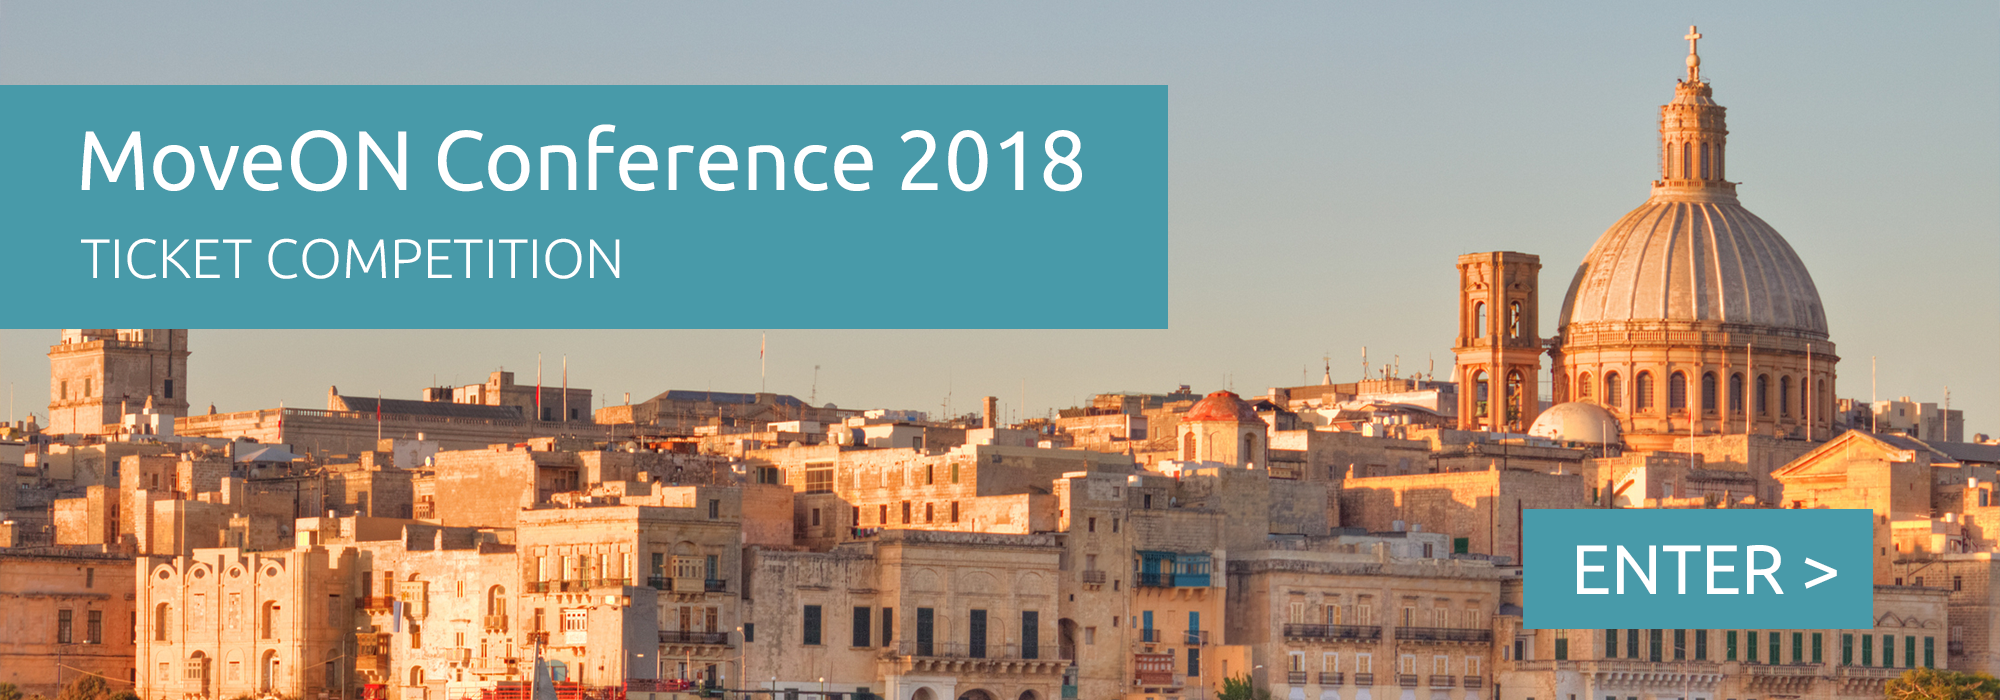 MoveONConf18 homepage - ticket competition